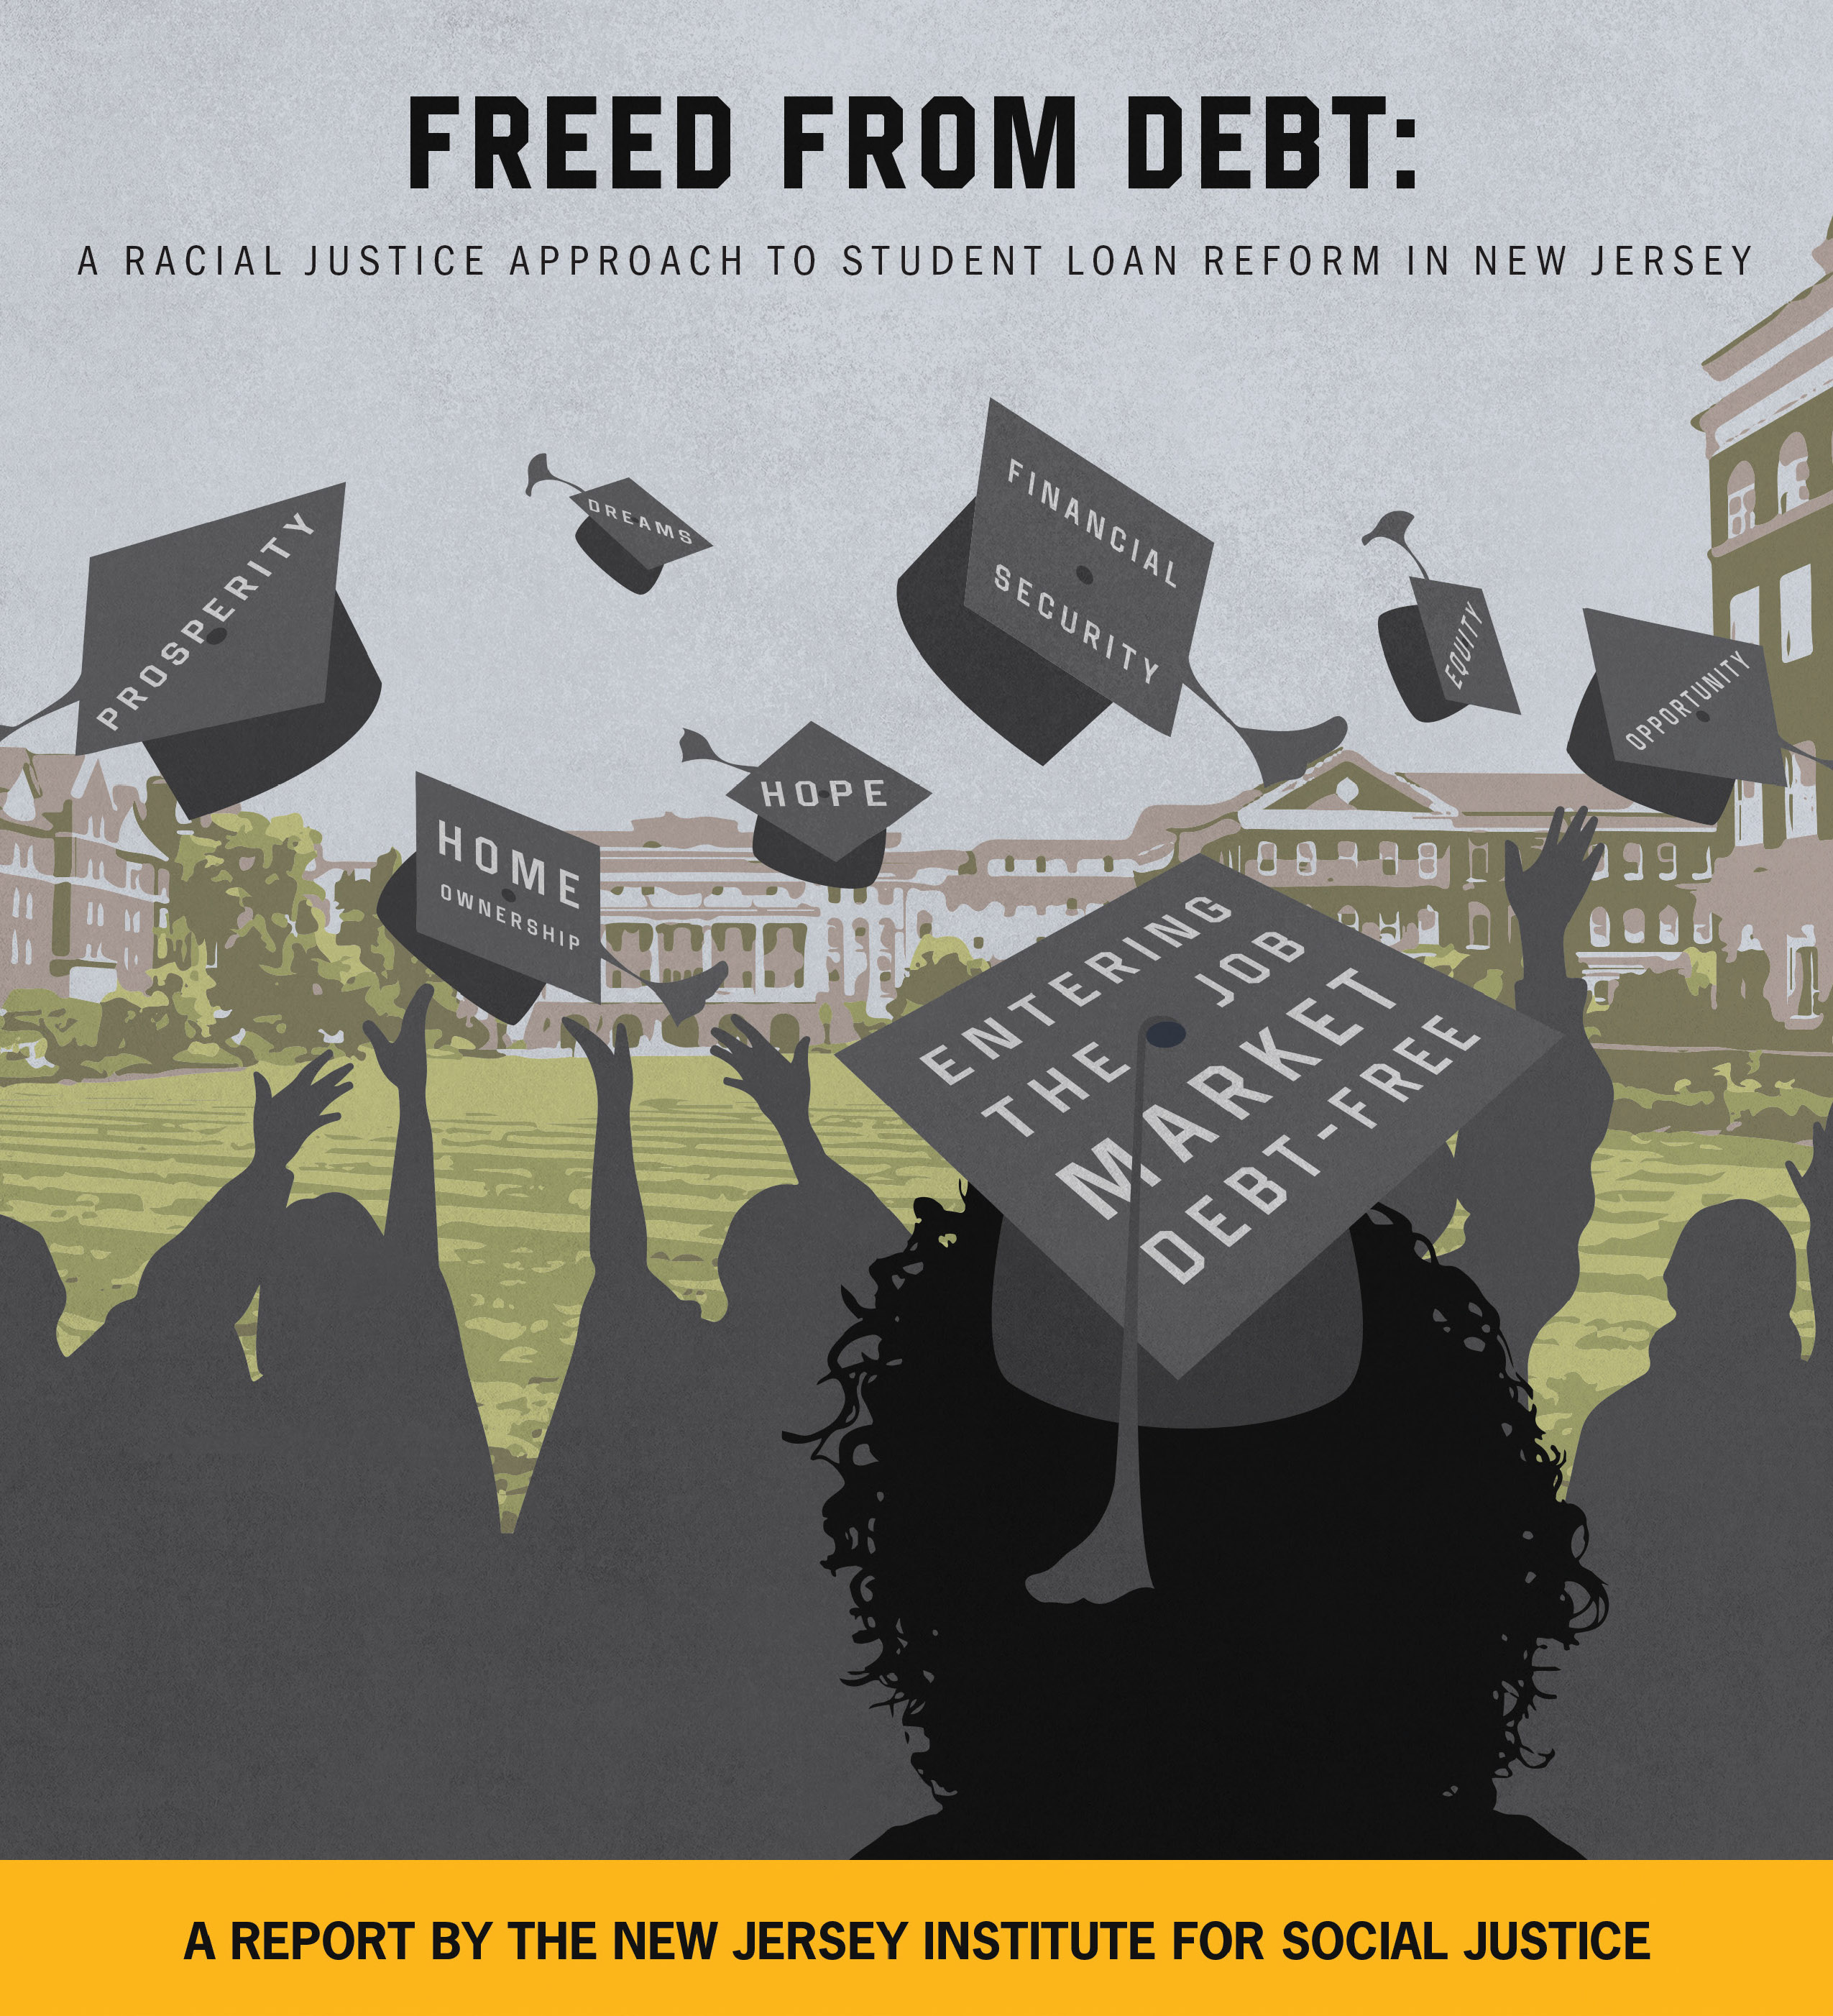 A Racial Justice Approach to Student Loan Reform in New Jersey. Read it HERE